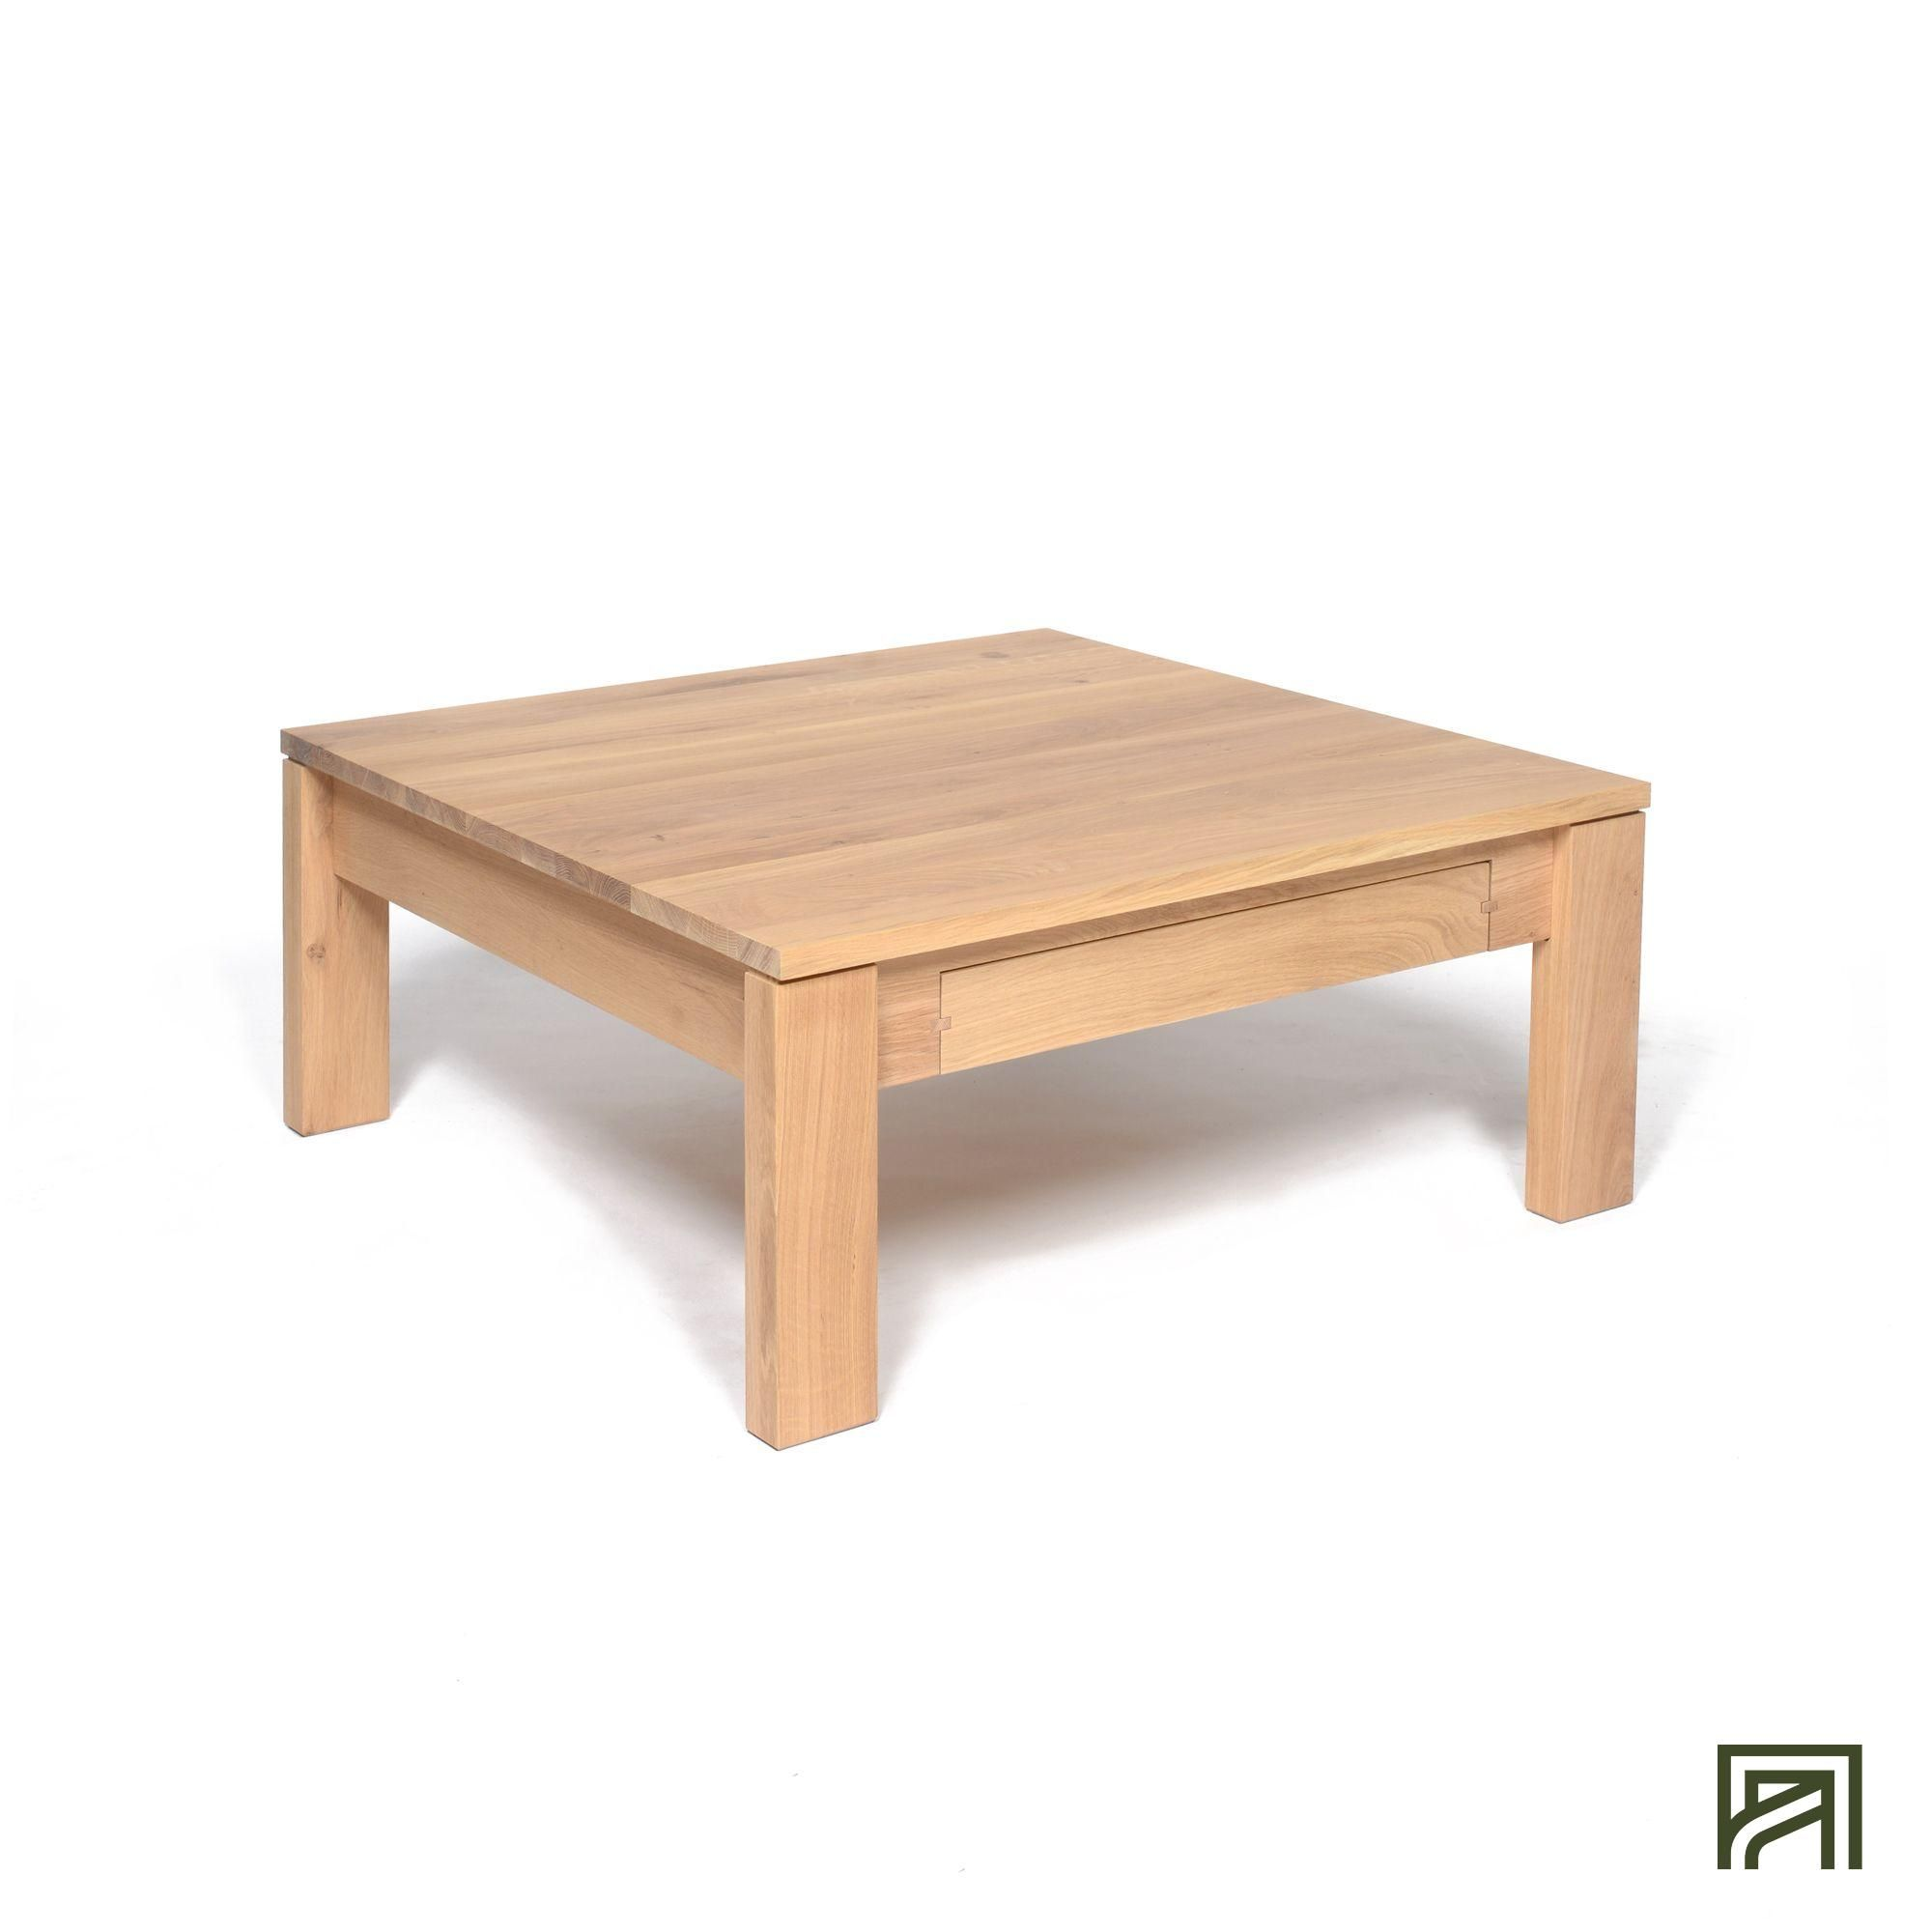 Alinea Emotion Table Basse En Chene Massif Avec 1 Tiroir Traversant 100x100cm Alinea Decoration Ta Table Basse Mobilier De Salon Table Basse Chene